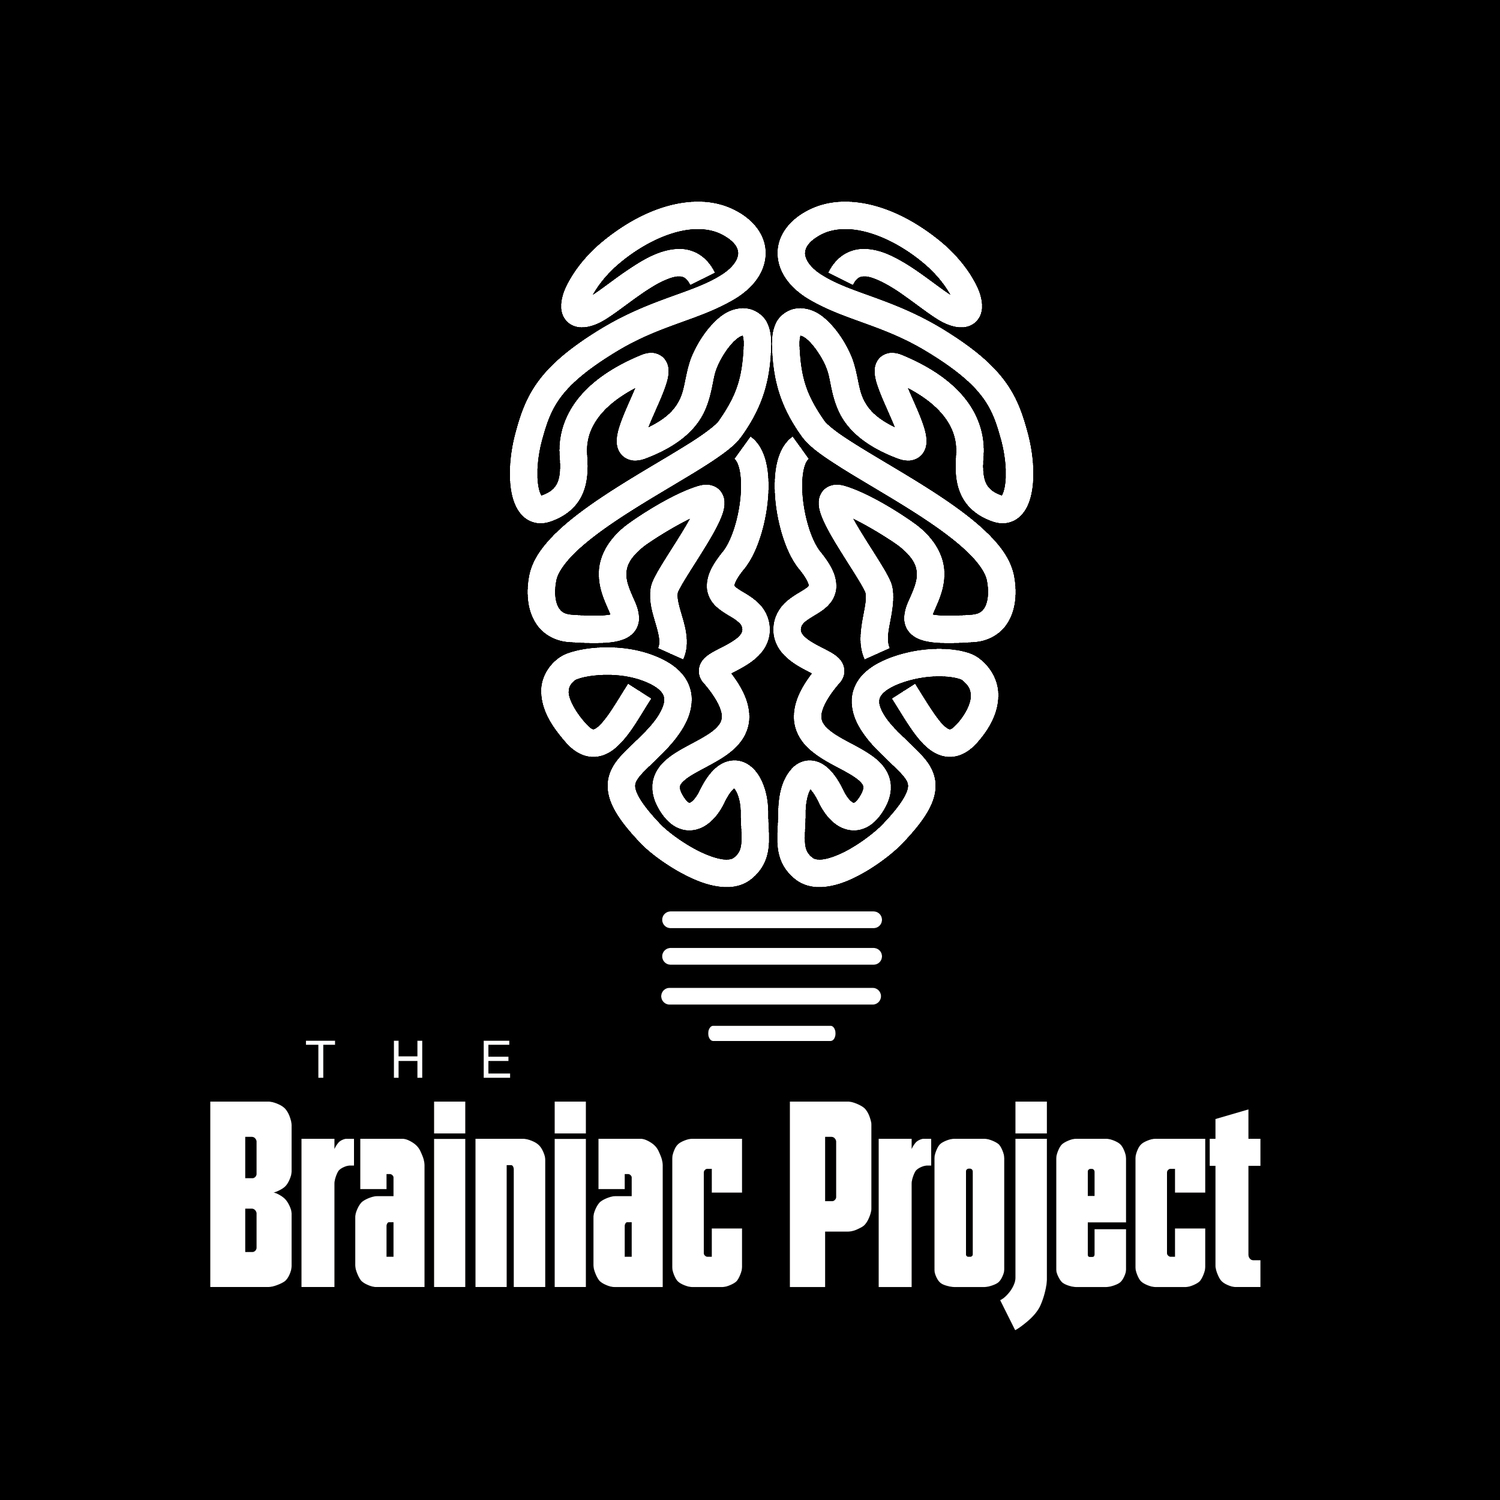 The Brainiac Project